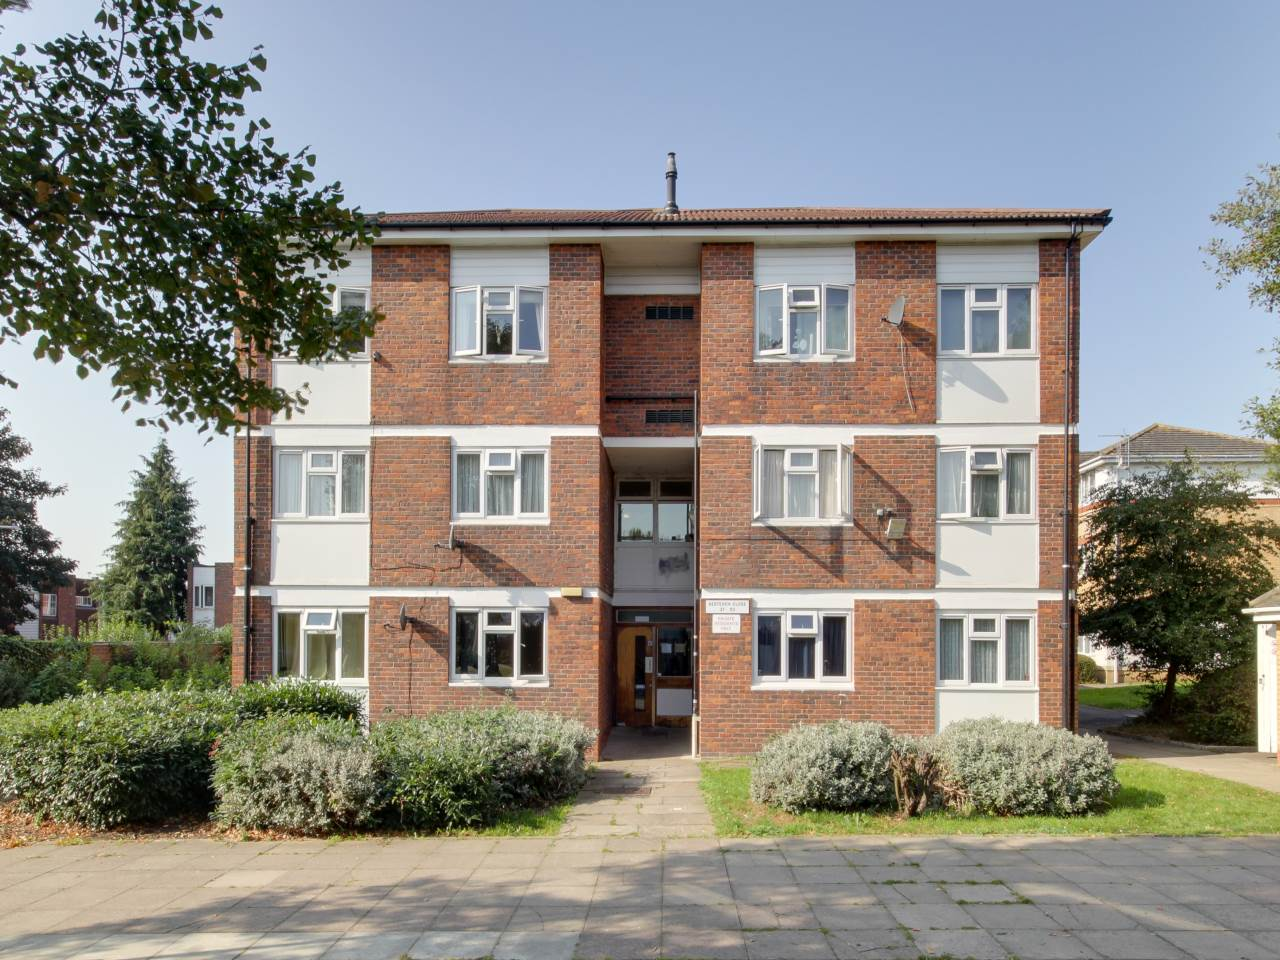 1 bed flat for sale in Hainault , IG6